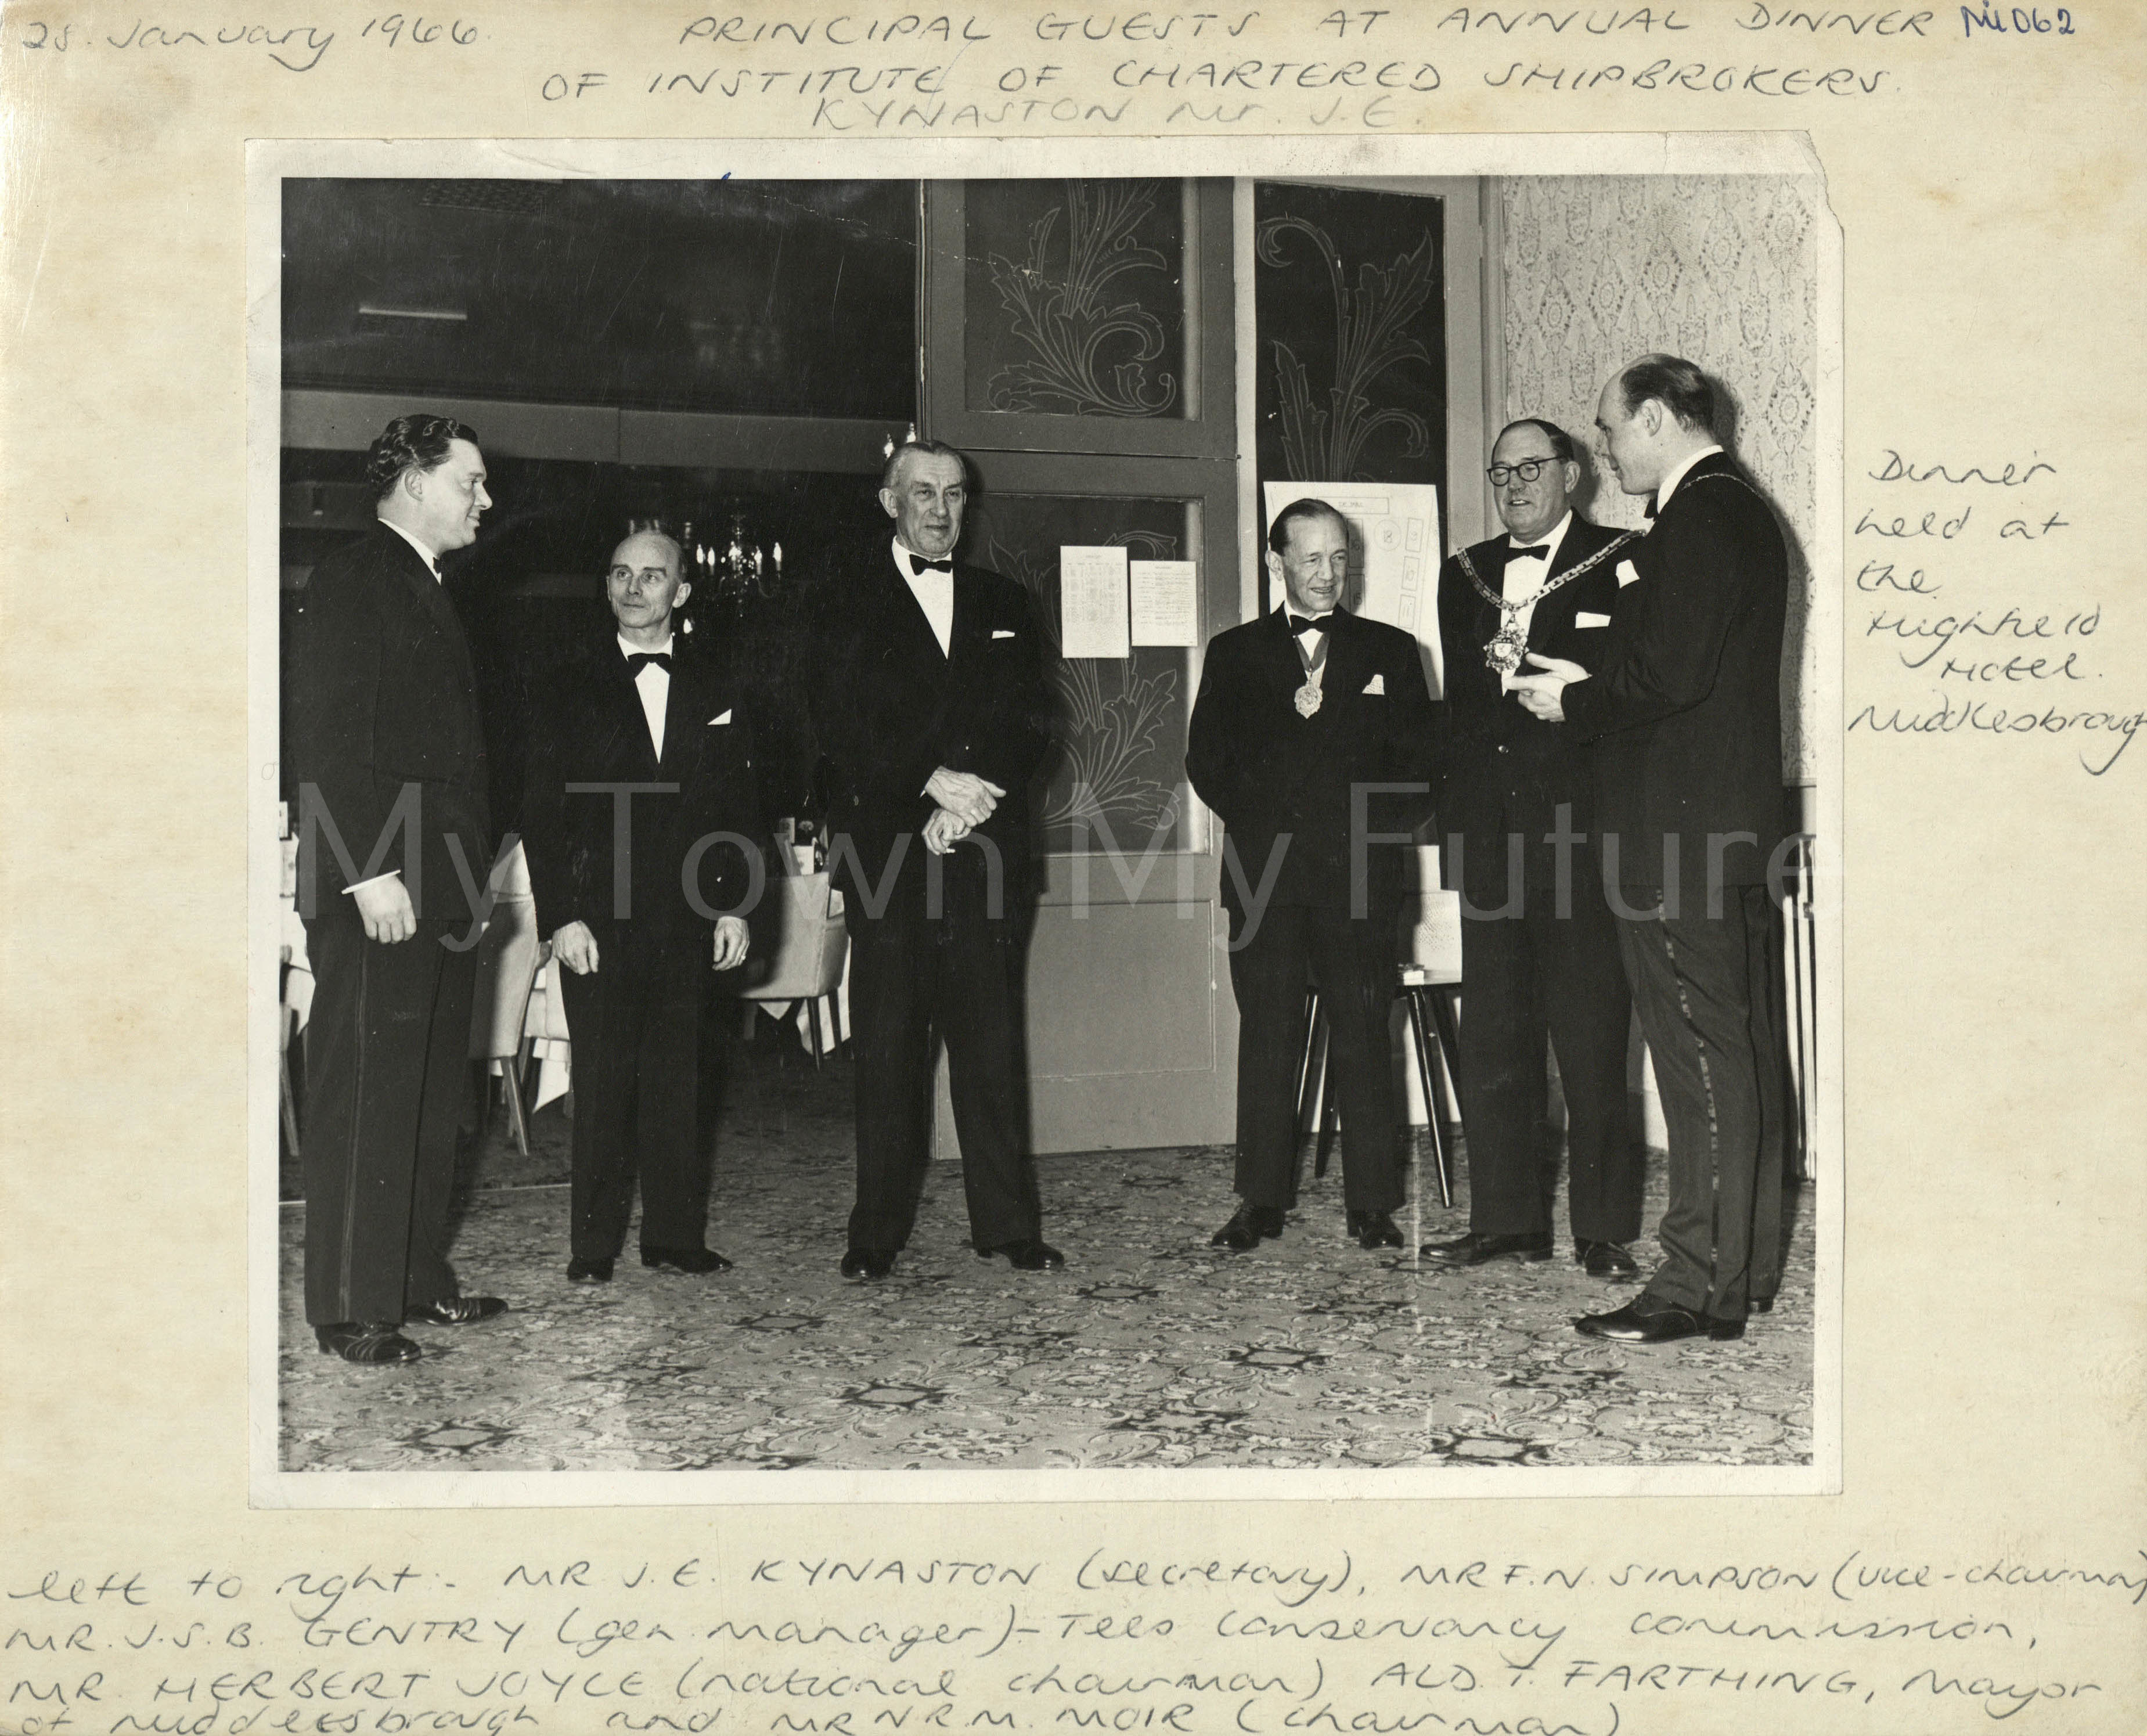 Institute Of Chartered Shipbrokers Annual Dinner, 1966